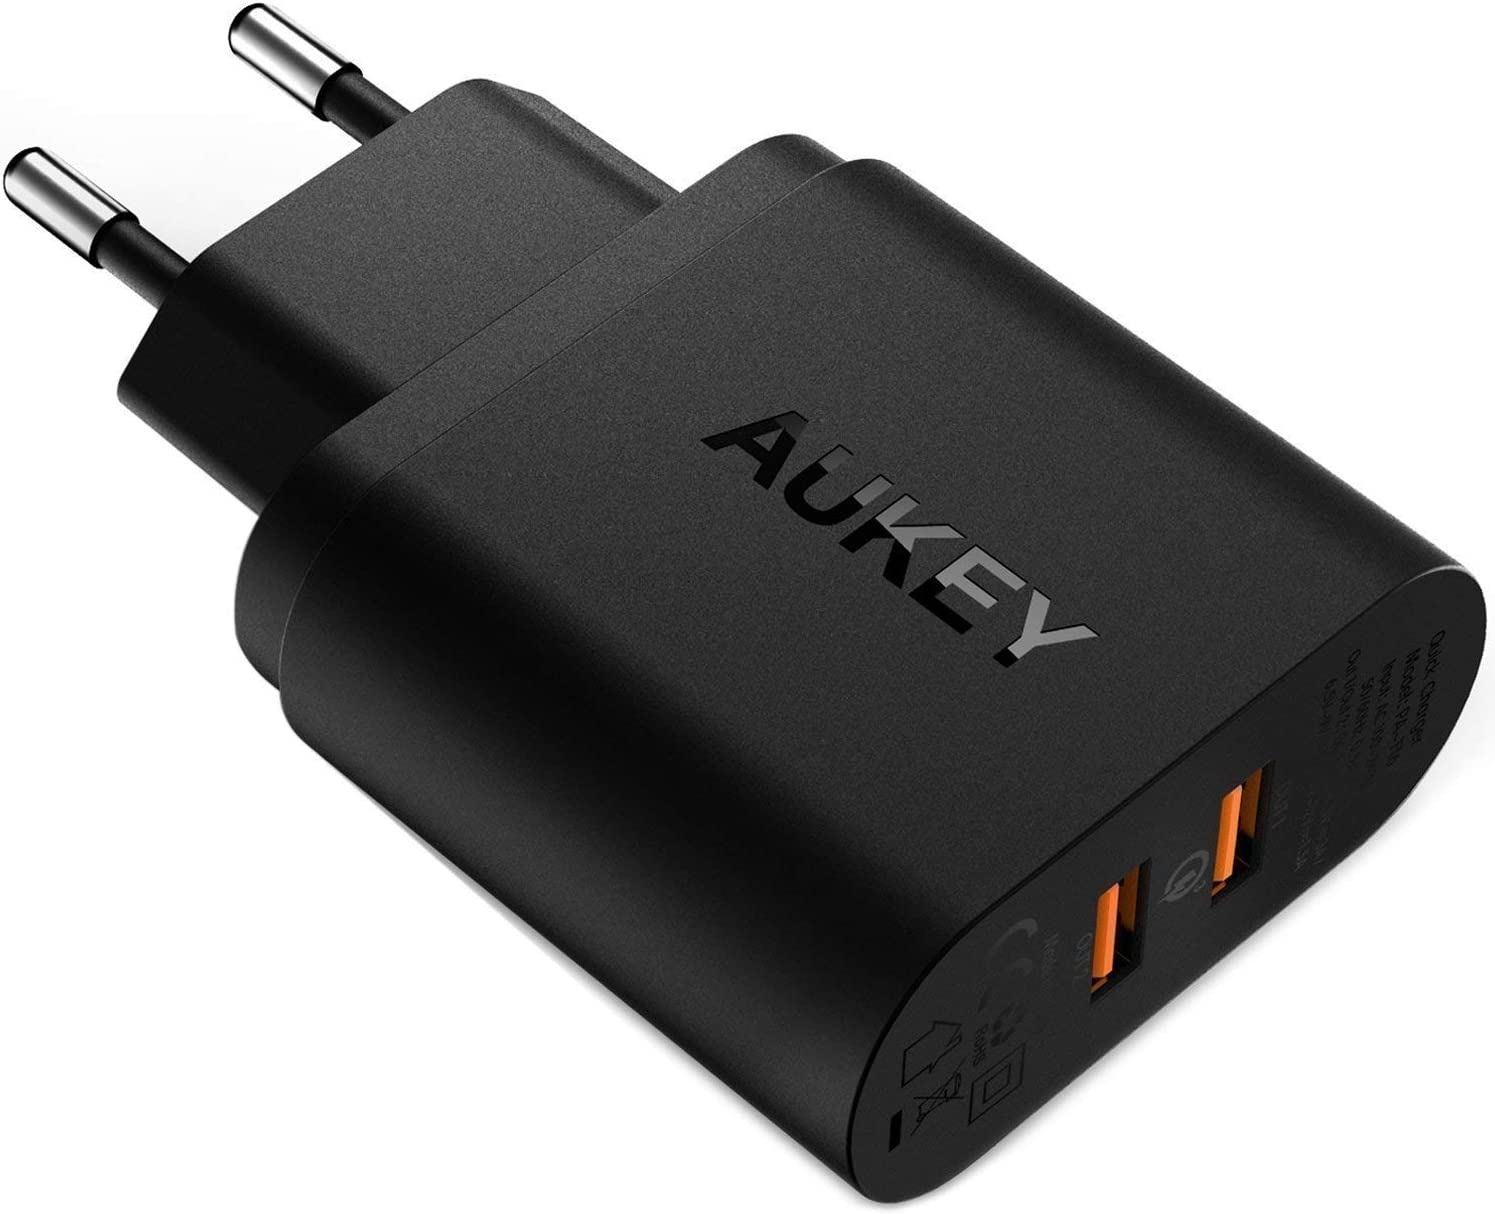 AUKEY Quick Charge 3.0 Cargador de Pared 39W Dual Puerto Cargador Móvil para Samsung Galaxy S8 / S8+/ Note 8, iPhone XS / XS Max / XR, iPad Pro / Air, HTC 10, LG G5 / G6 y más